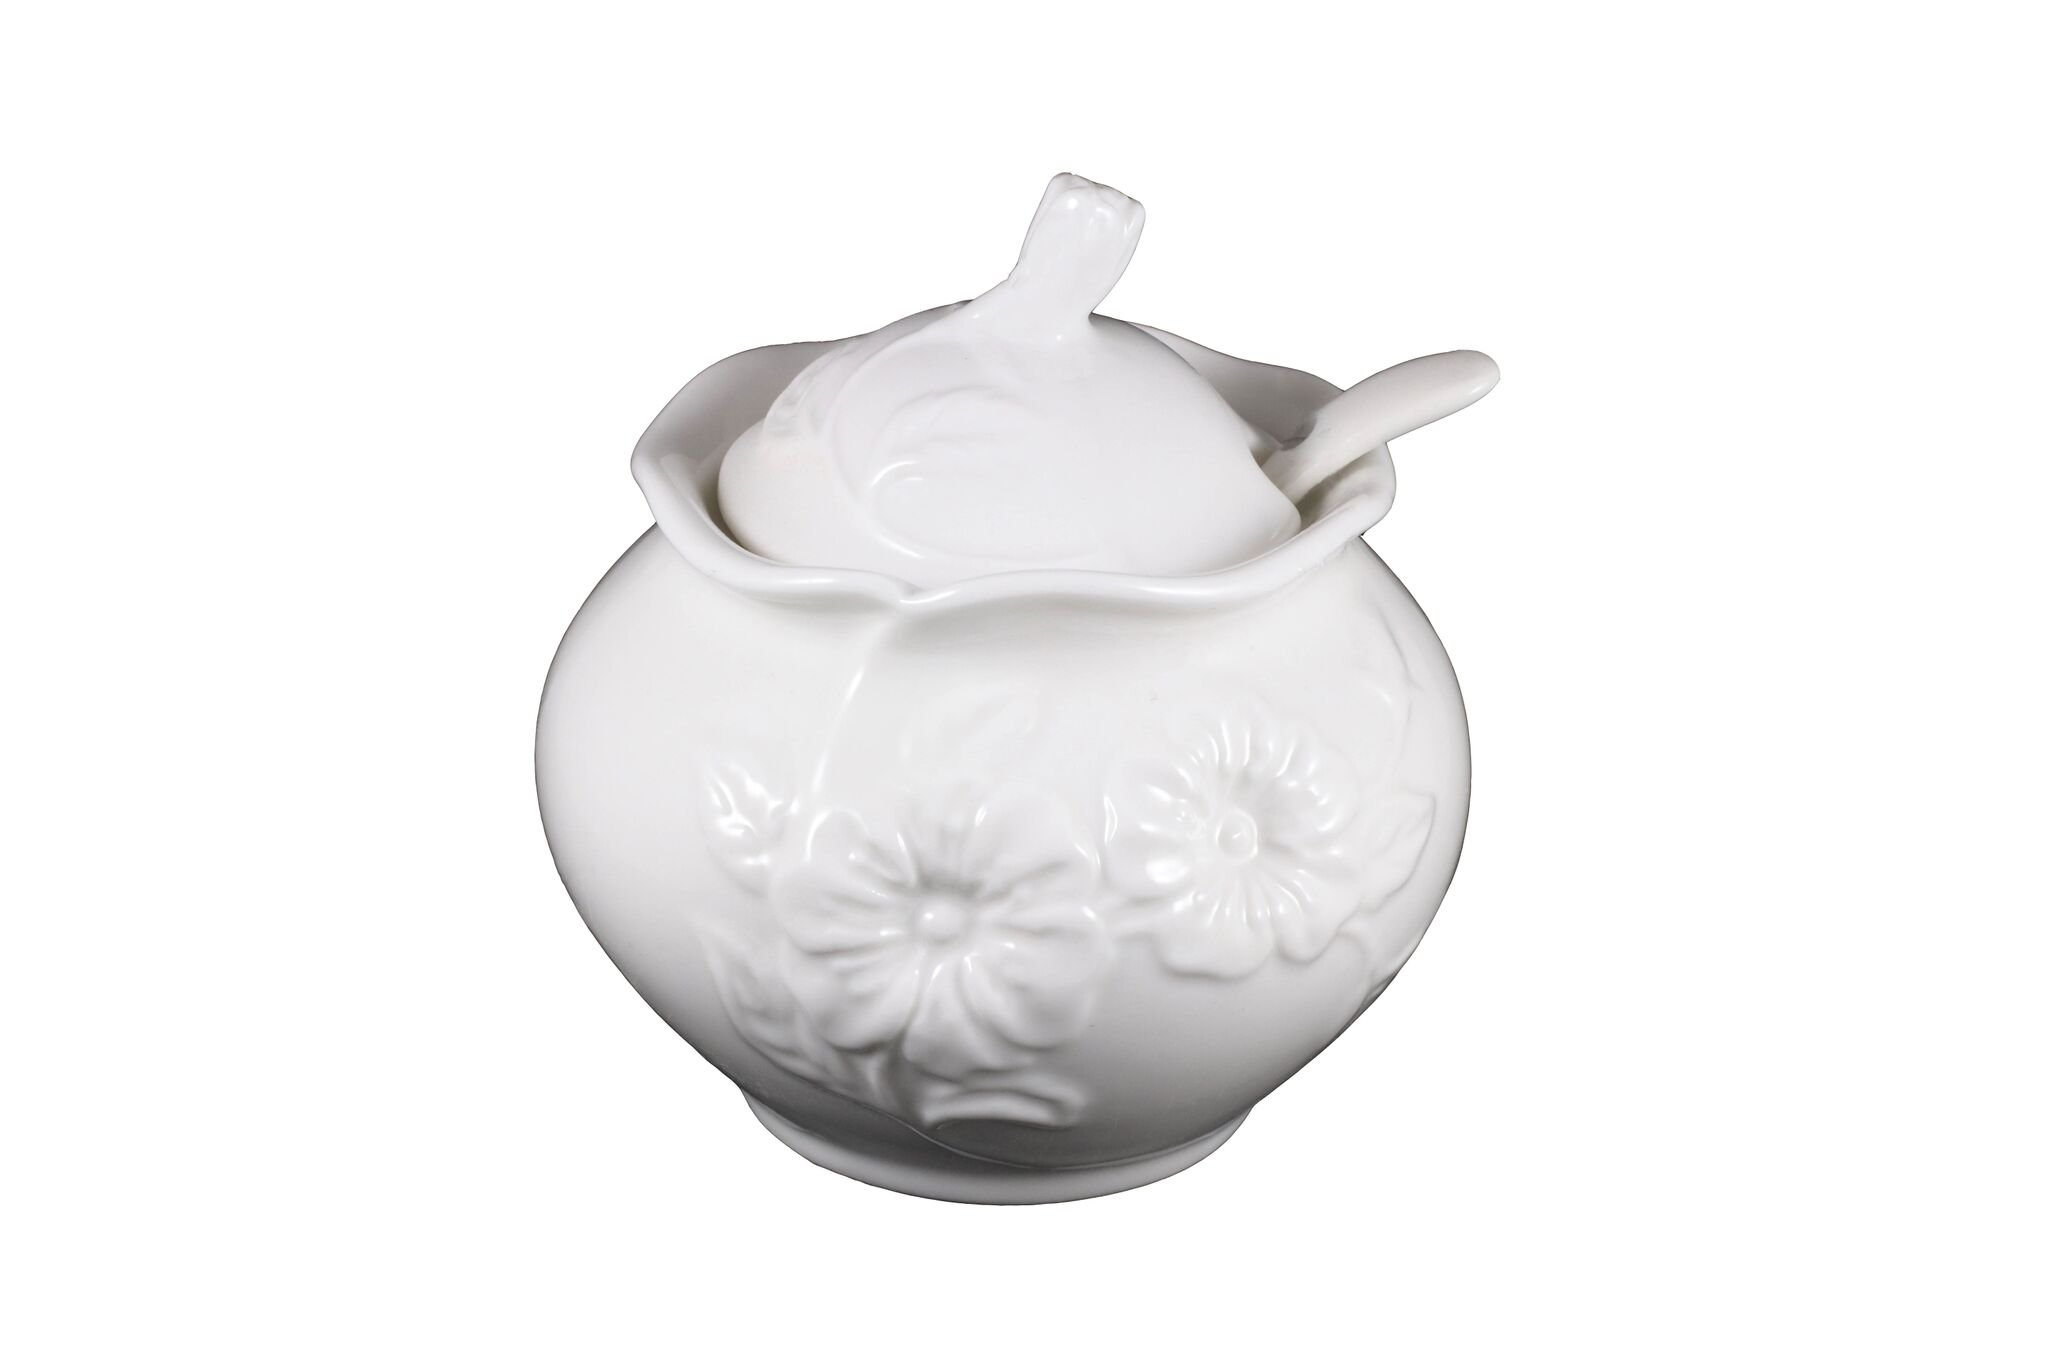 Porcelain Sugar Bowl with Lid and Spoon